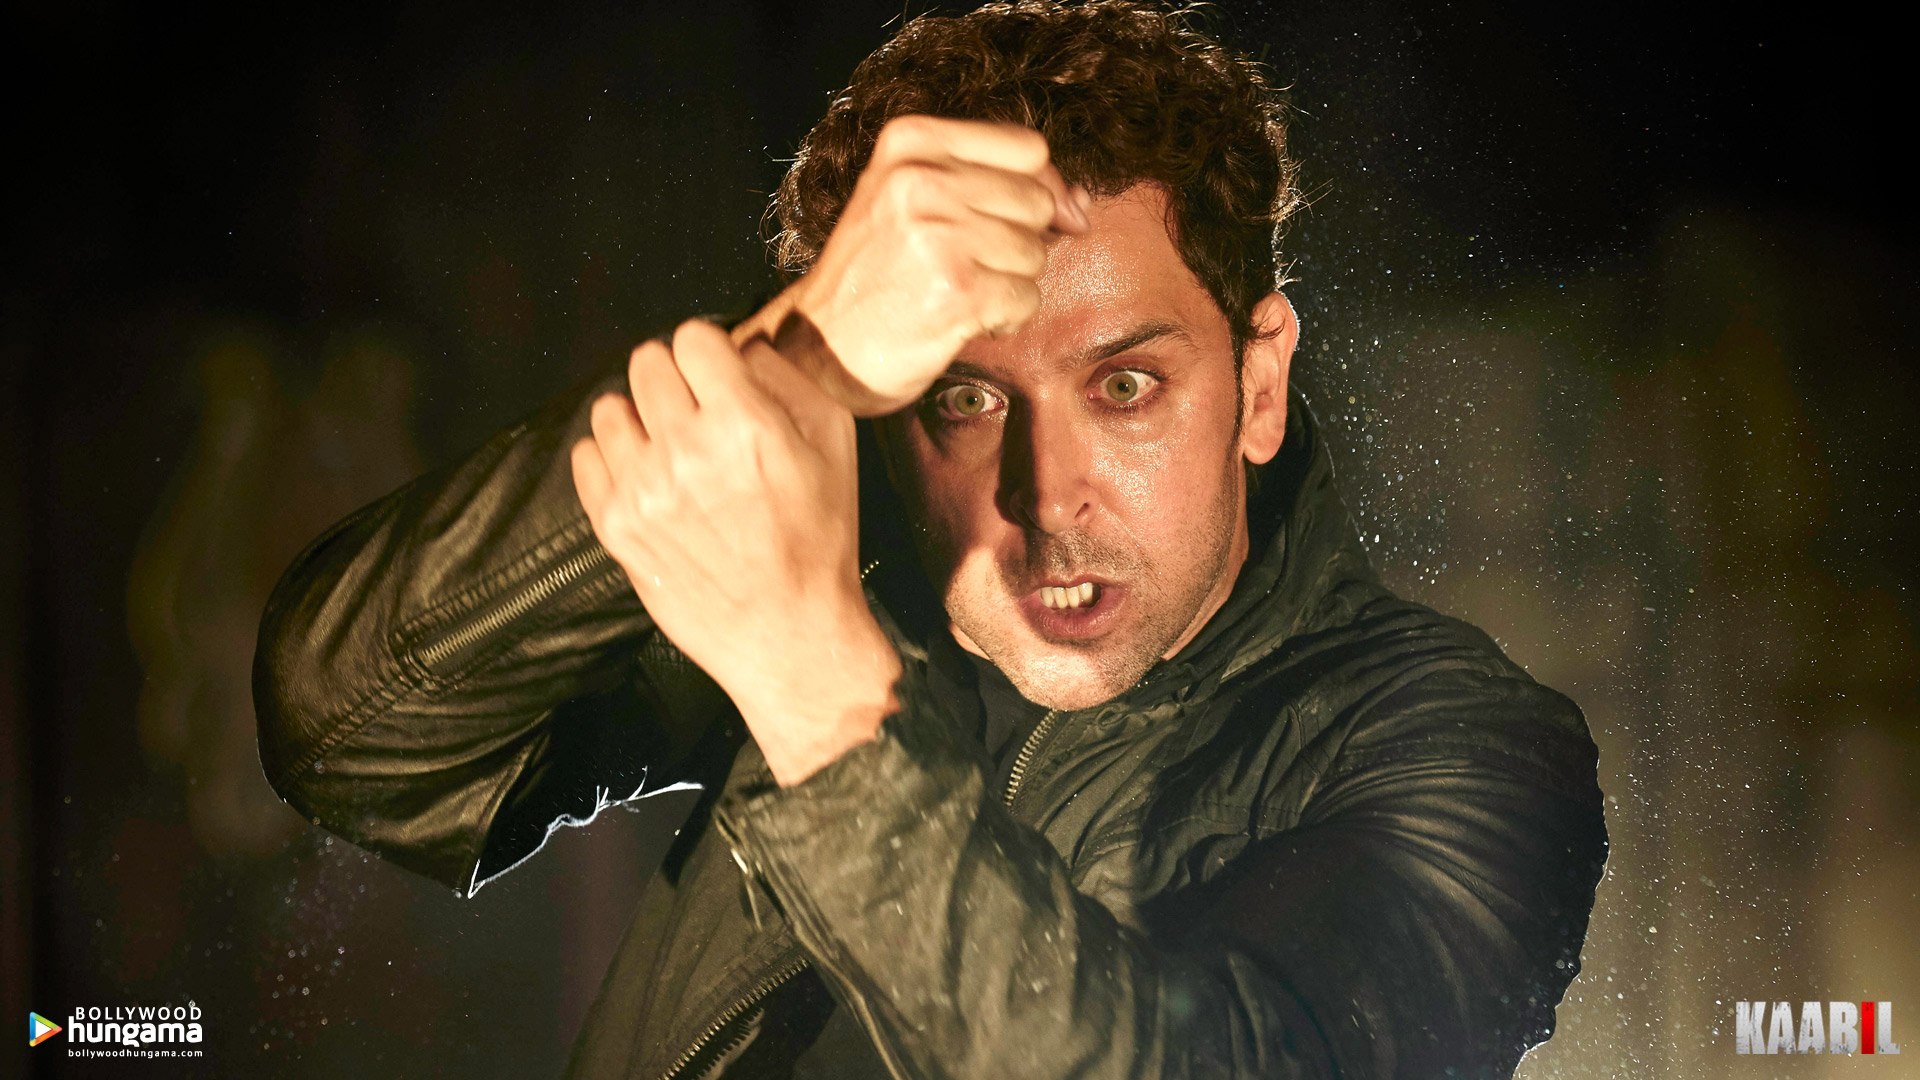 Amazing Wallpaper Movie Kabil - Kaabil-33  Perfect Image Reference_545395.jpg